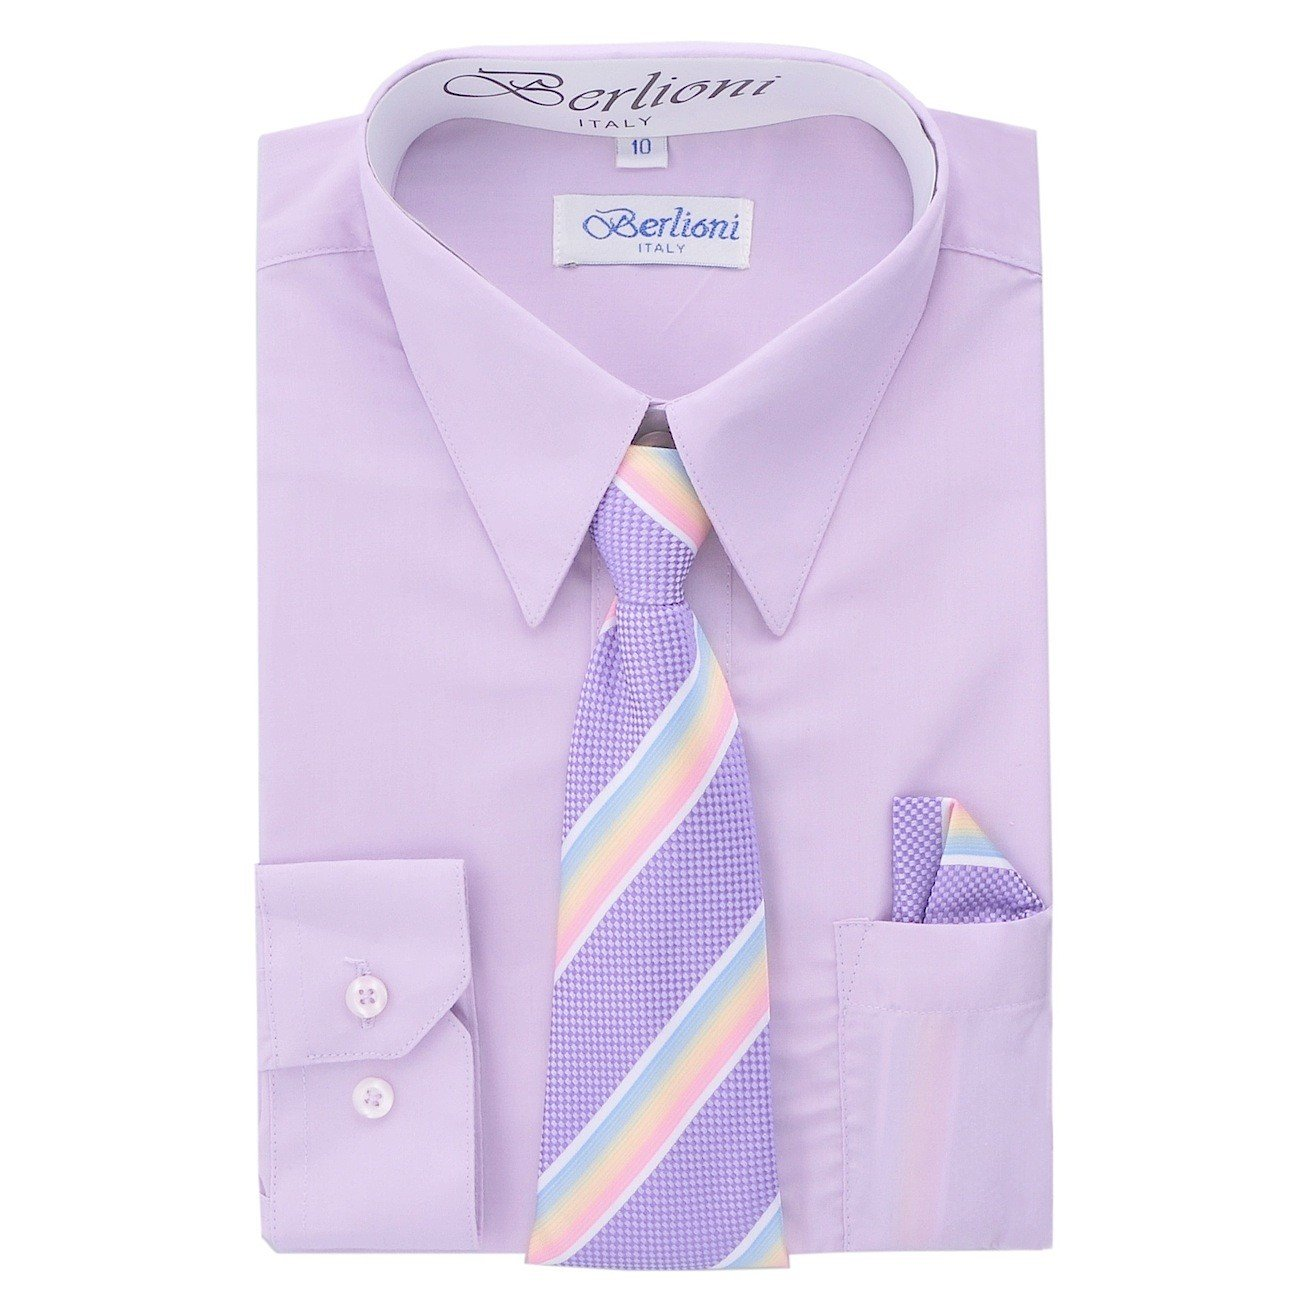 Boy's Dress Shirt, Necktie, and Hanky Set - Lilac, Size 12 Boy's Dress Shirt N-711